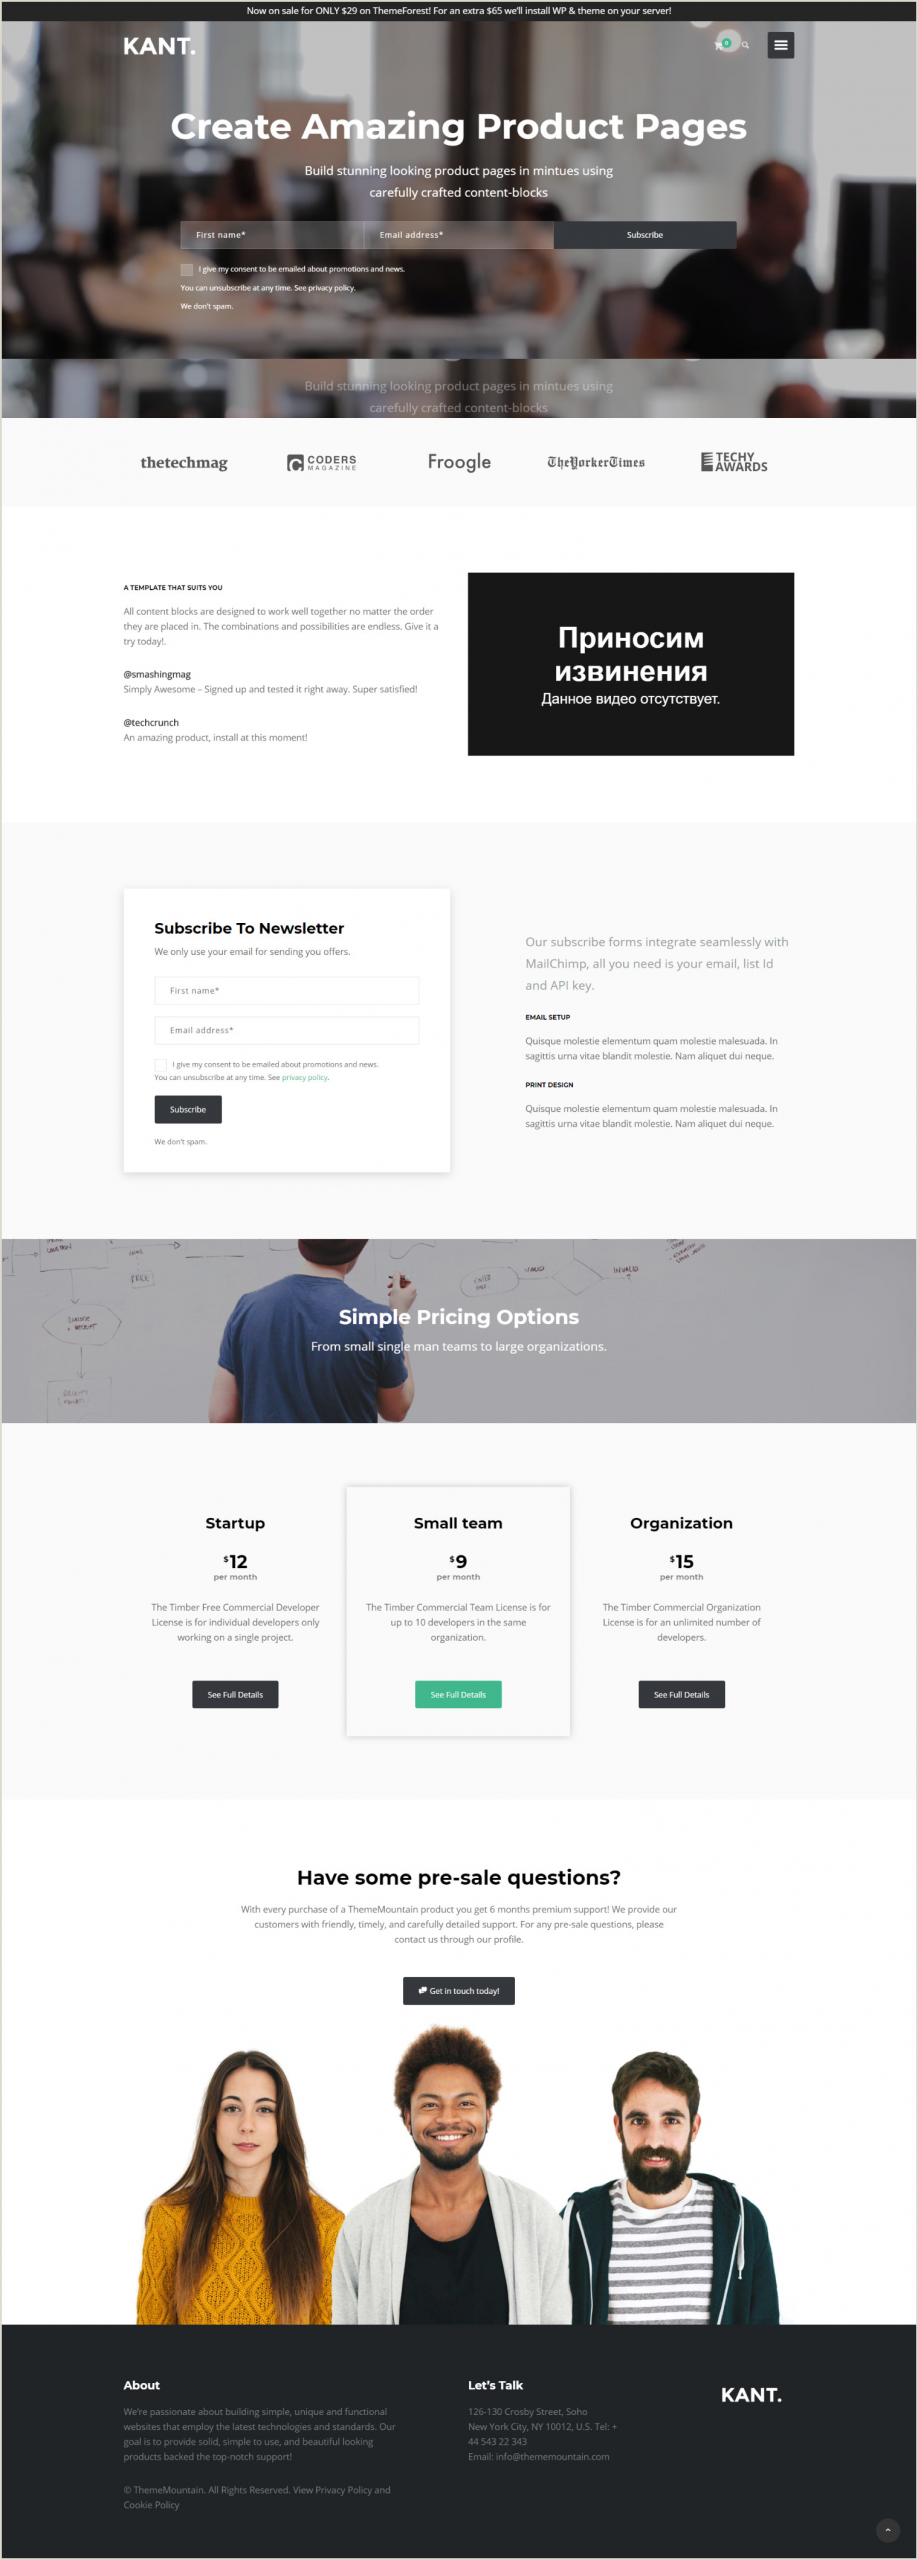 Top 10 Creative Agencies Top 10 Modern Stylish & Trendy WordPress Themes For A New